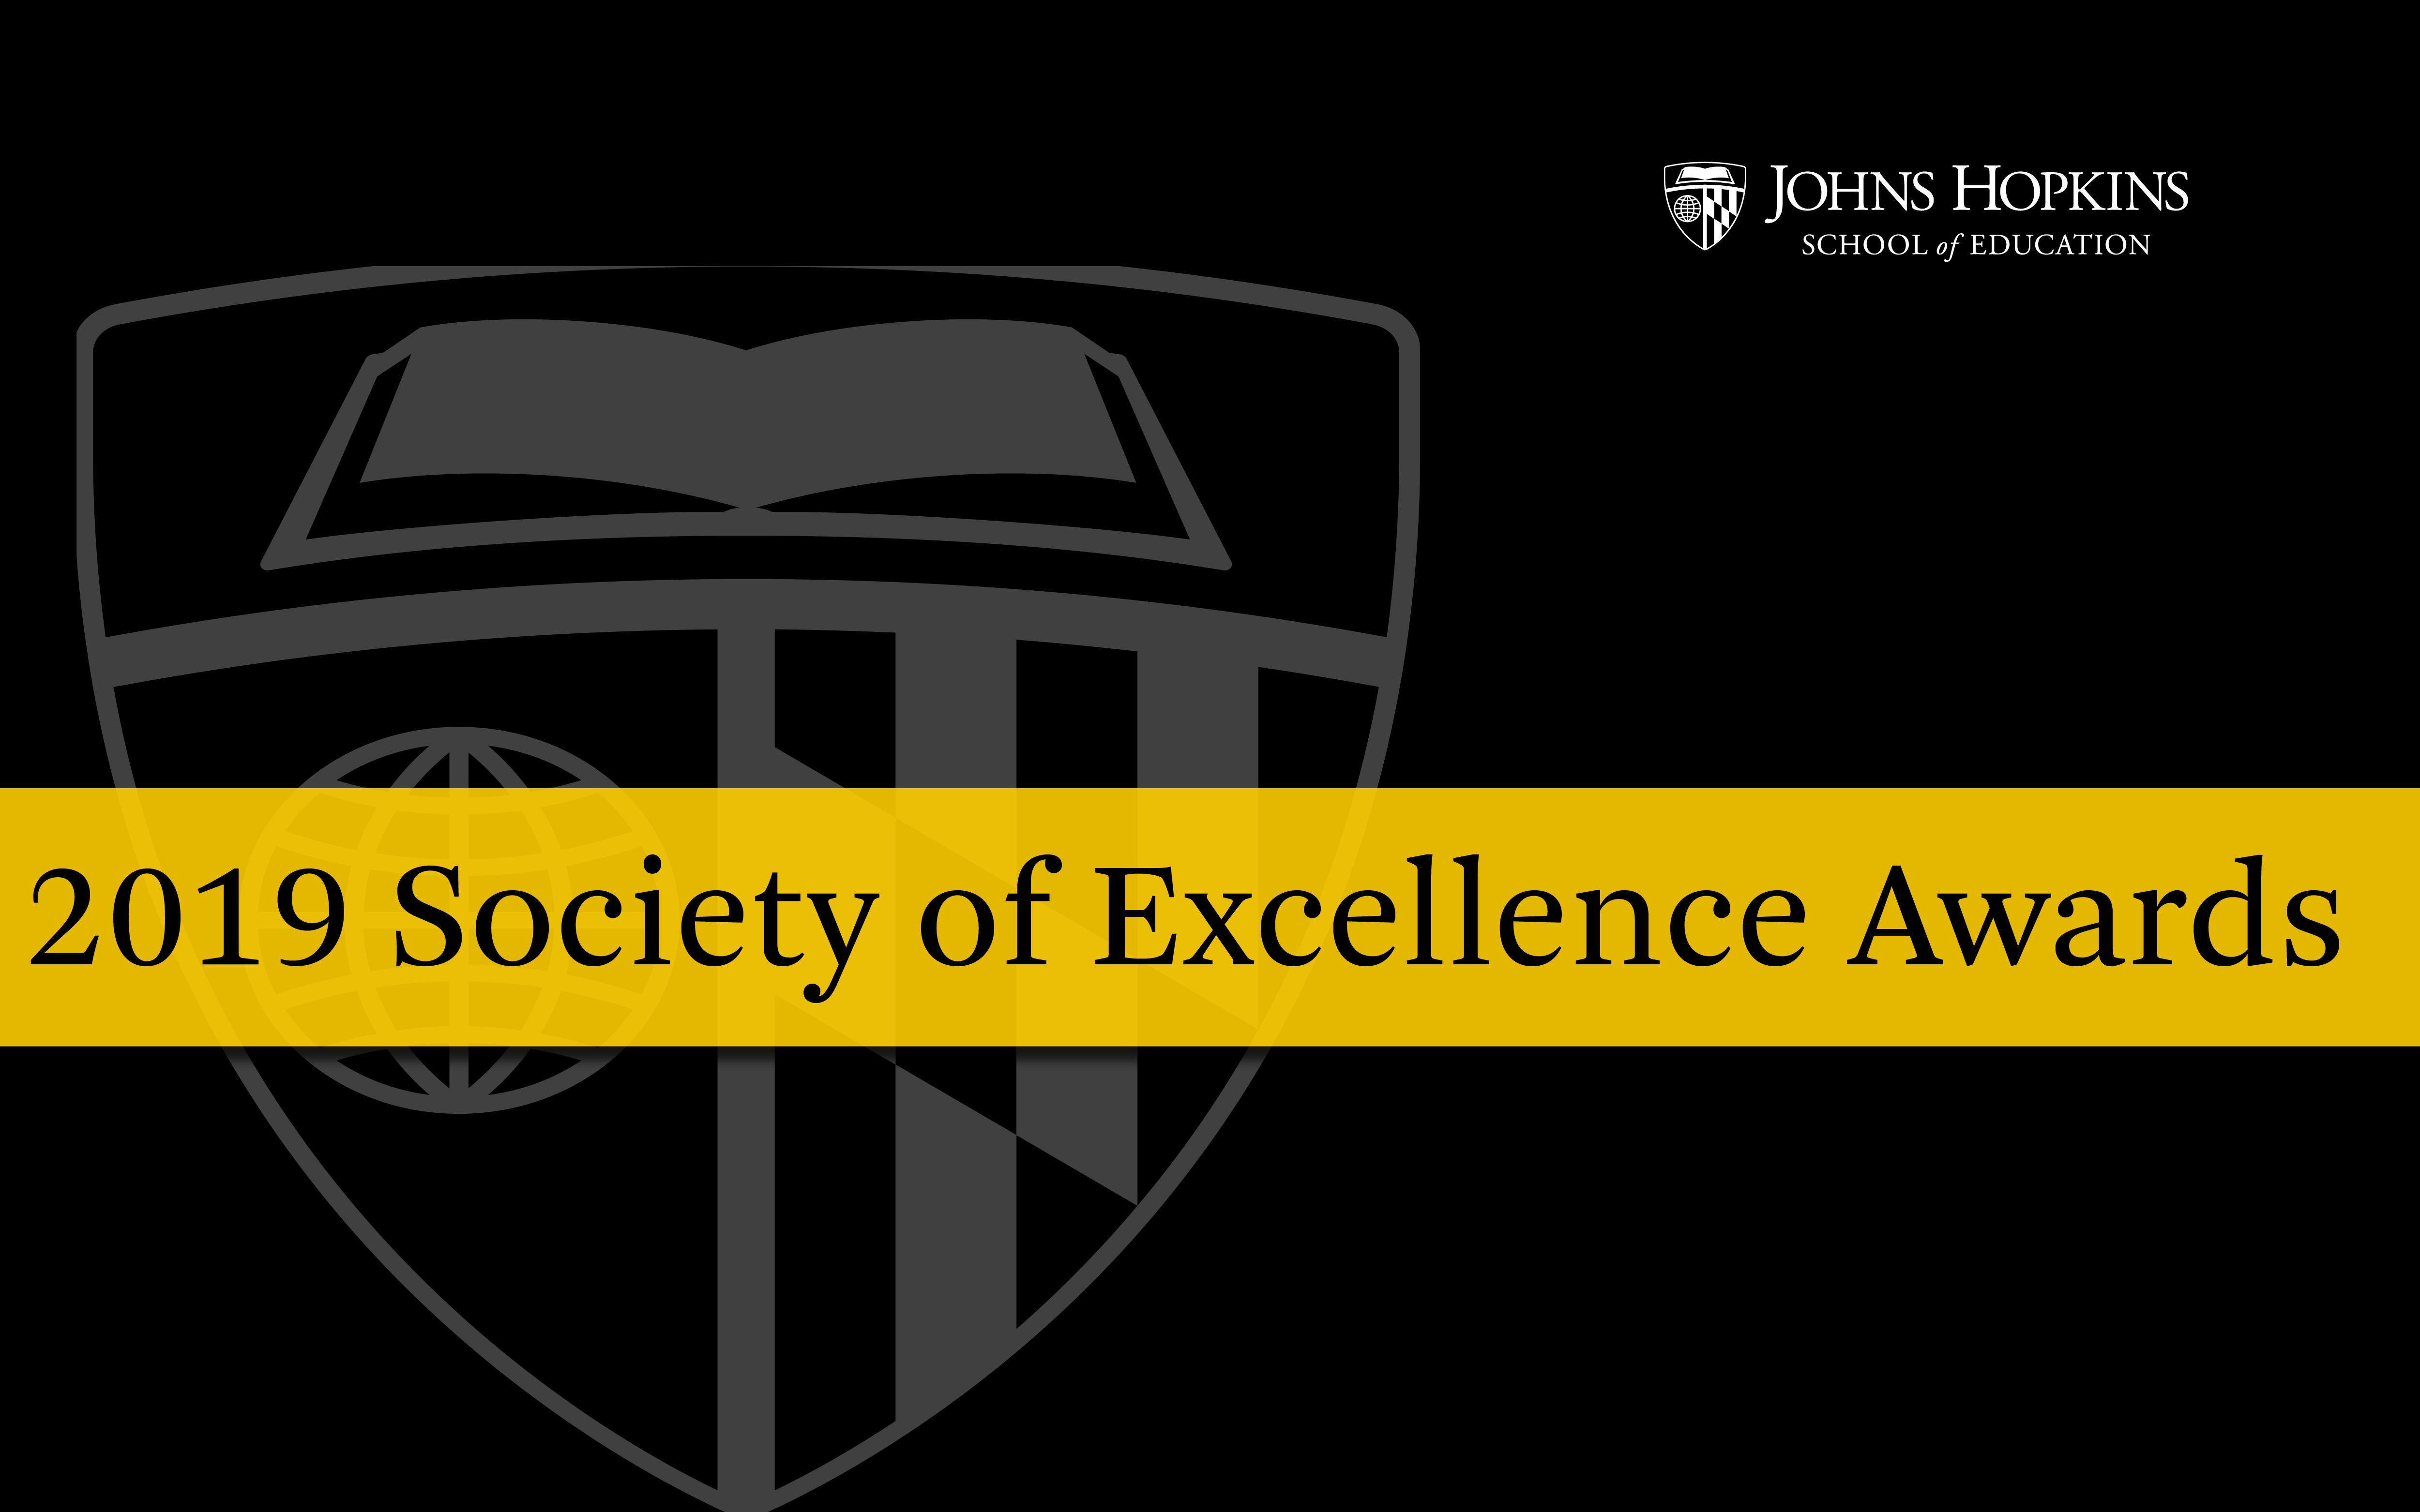 2019 Society of Excellence Awards poster